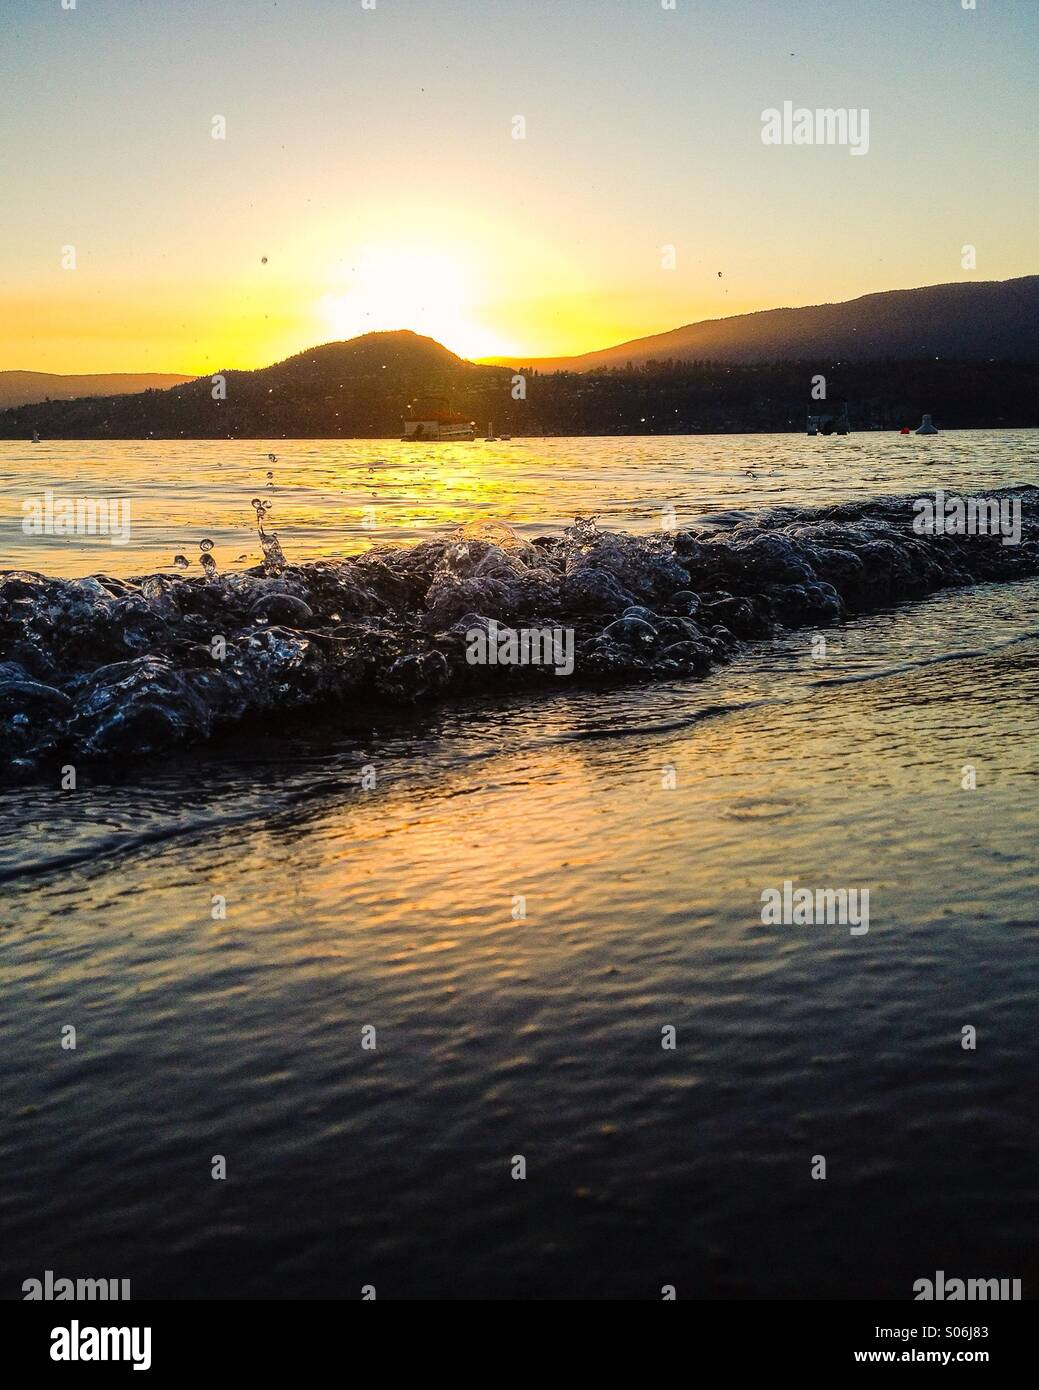 Small waves breaking on the beach at sunset; the glistening water bubbles and splashes. - Stock Image